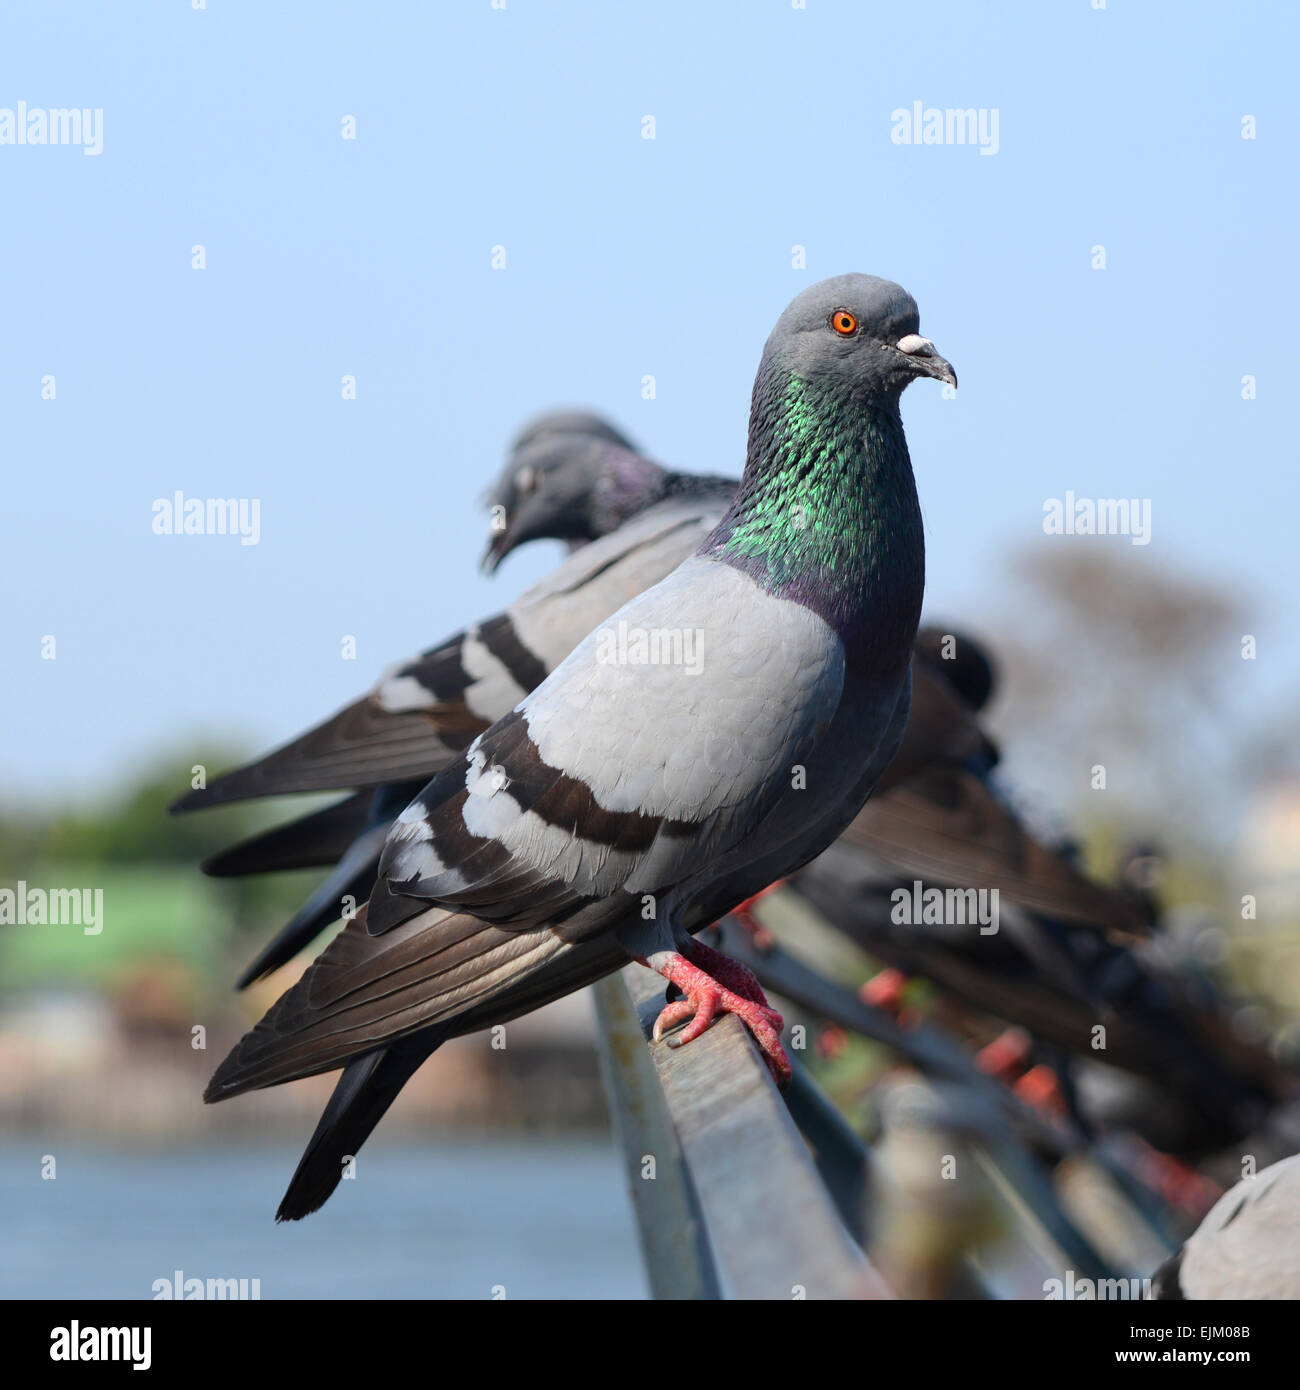 Group of pigeon stand on the bridge edge near river. - Stock Image